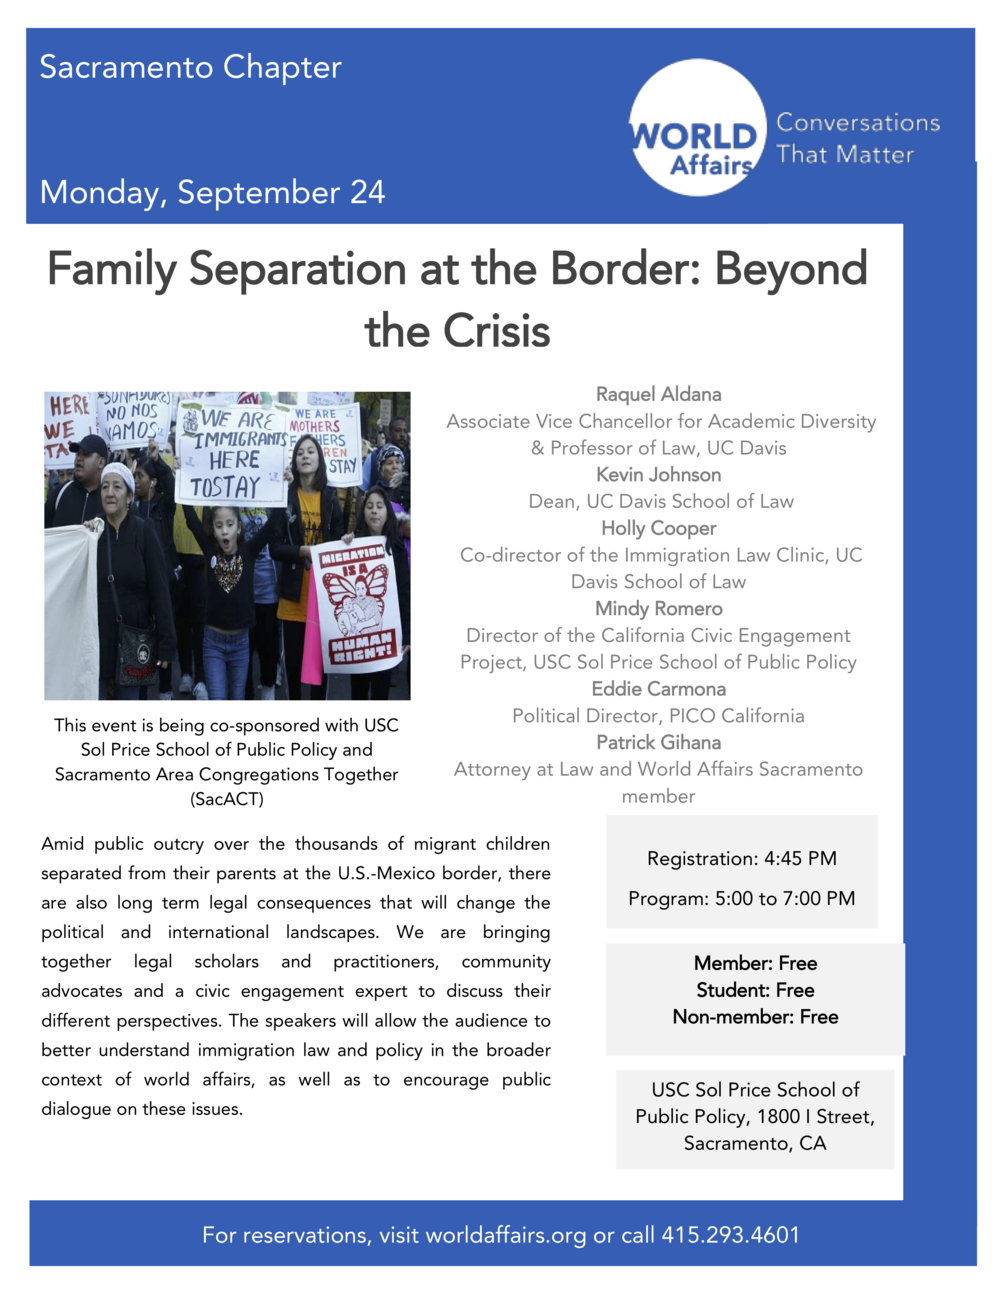 09.24.2018 SAC Family Separation at the Border Beyond the Crisis.png